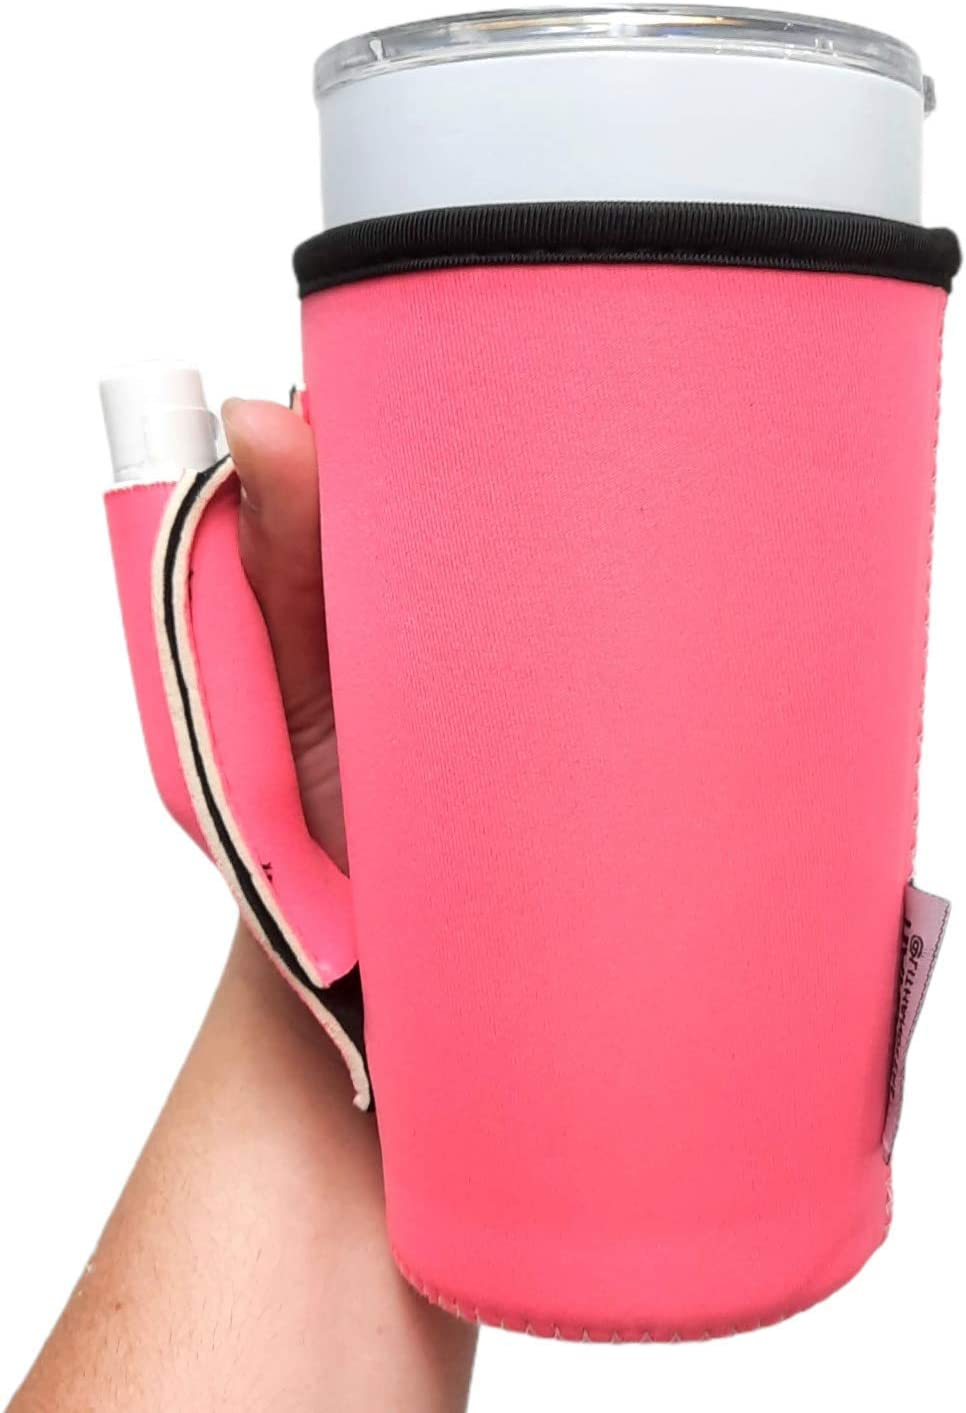 20oz Tumbler Handler with Pocket COMPATIBLE with Blender Bottles, 20oz Tumblers, Large Soft Drinks/Loaded Teas, Venti Coffee, patent pending (Neon Pink)